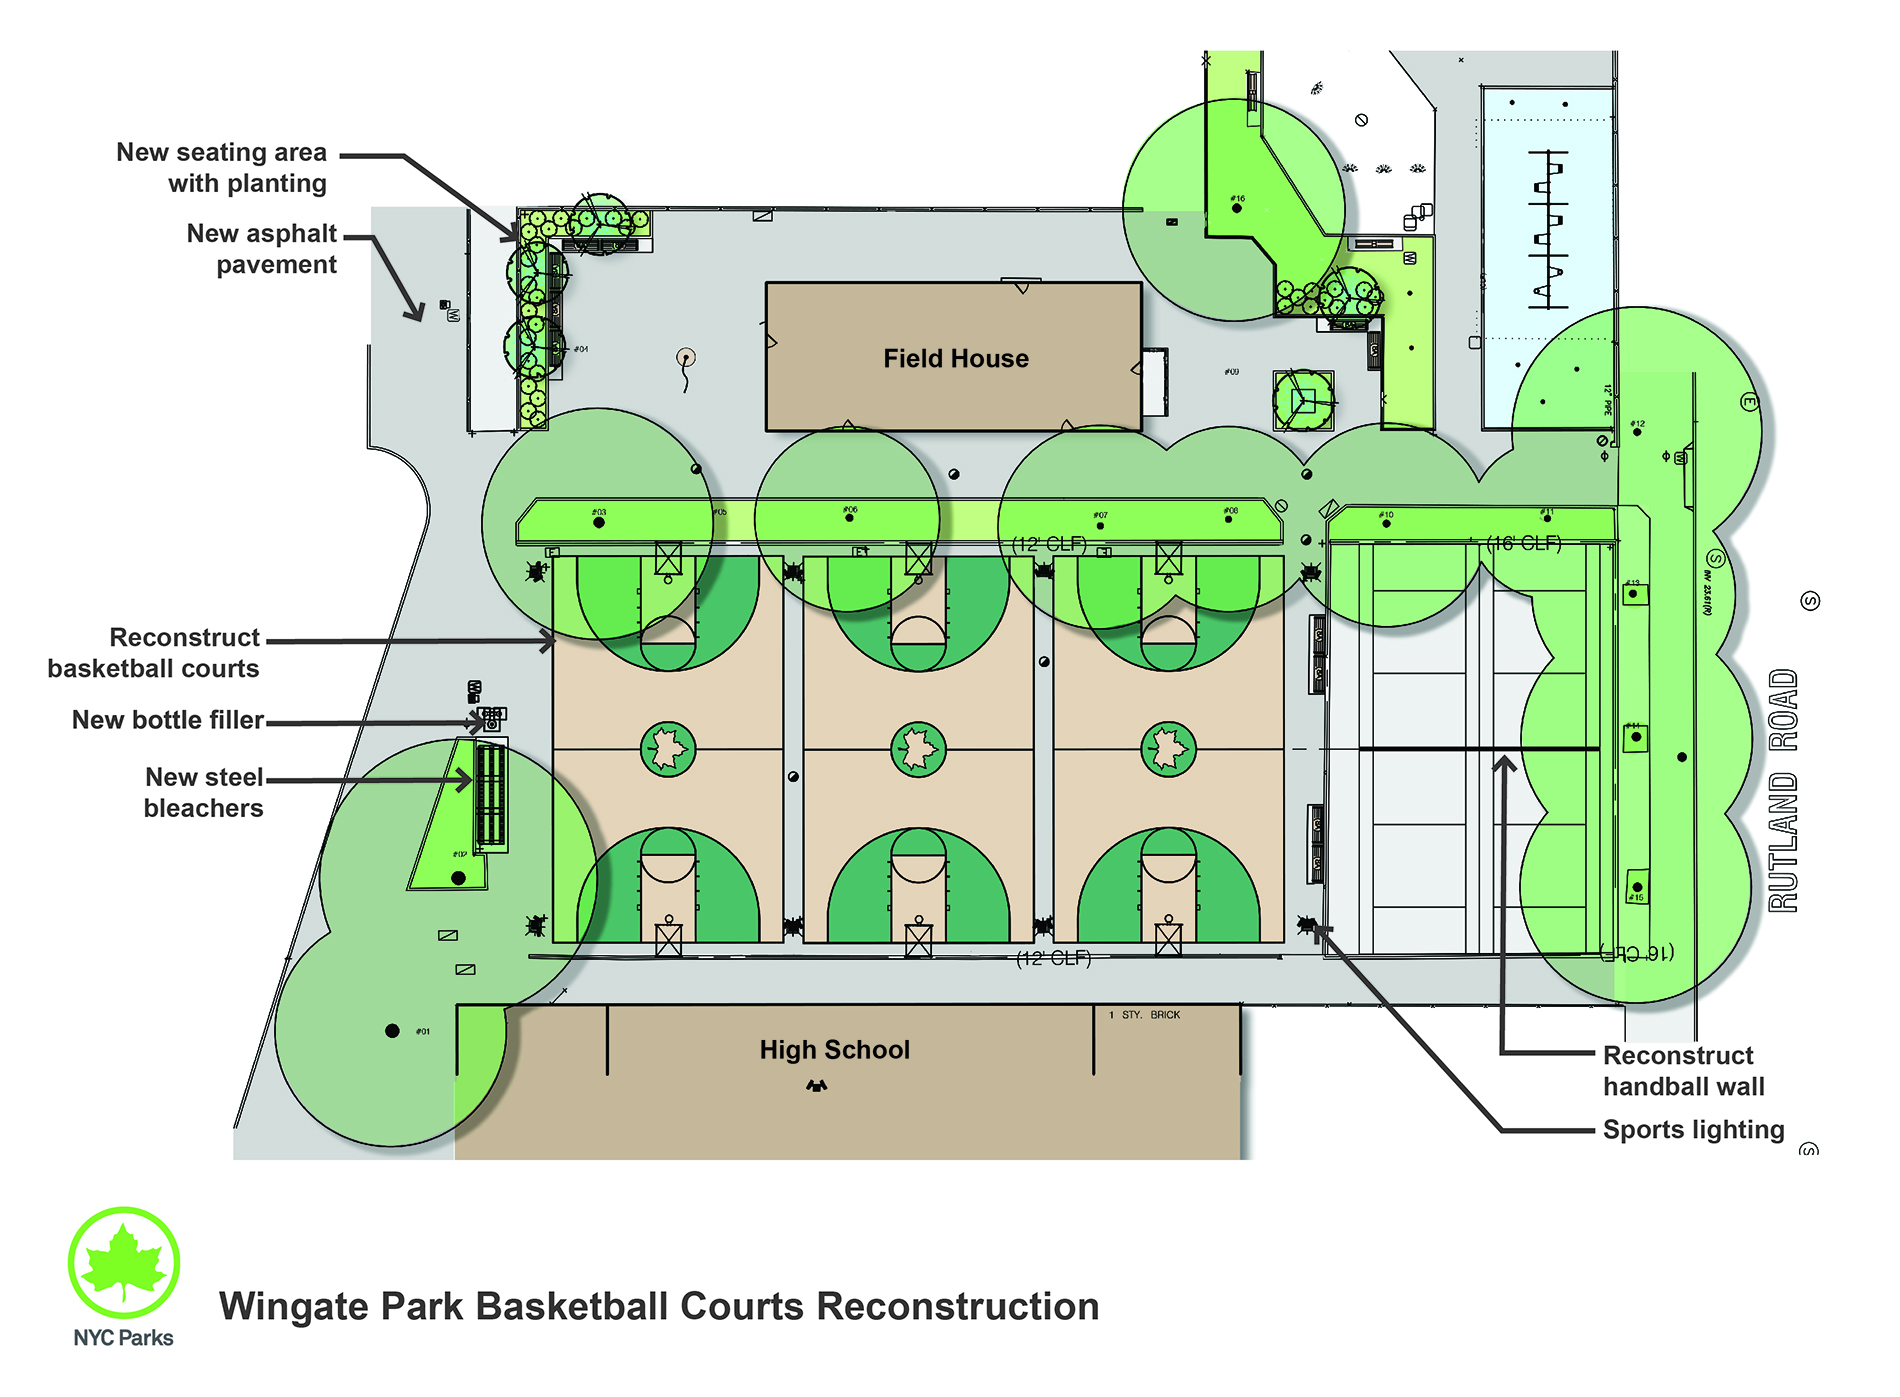 Design of Wingate Park Basketball Courts Reconstruction